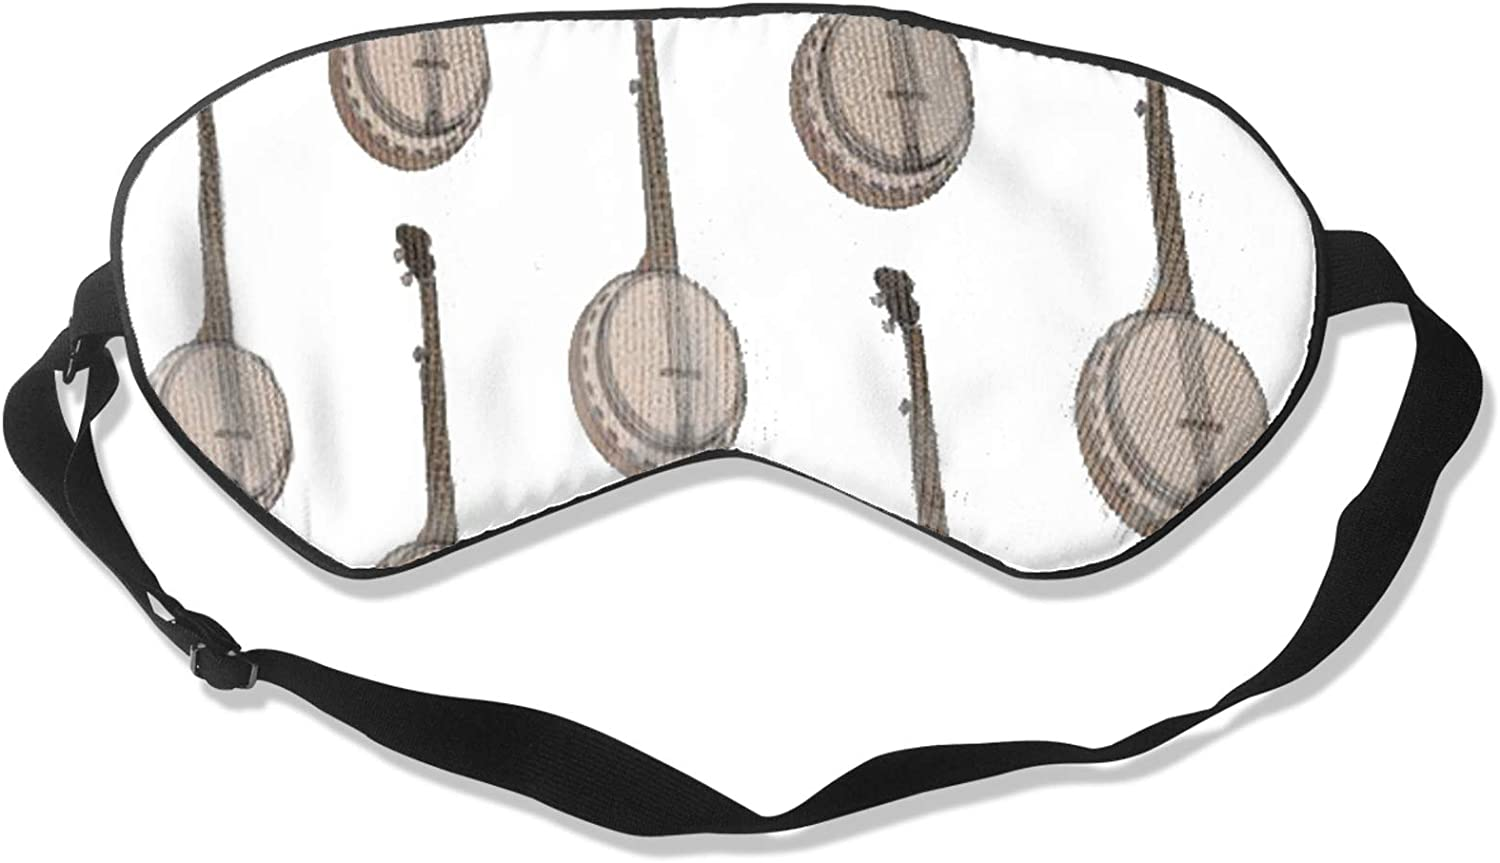 Light Blocking Banjo Musical Sleeping Mask for 3D security Men Cont Women Discount is also underway